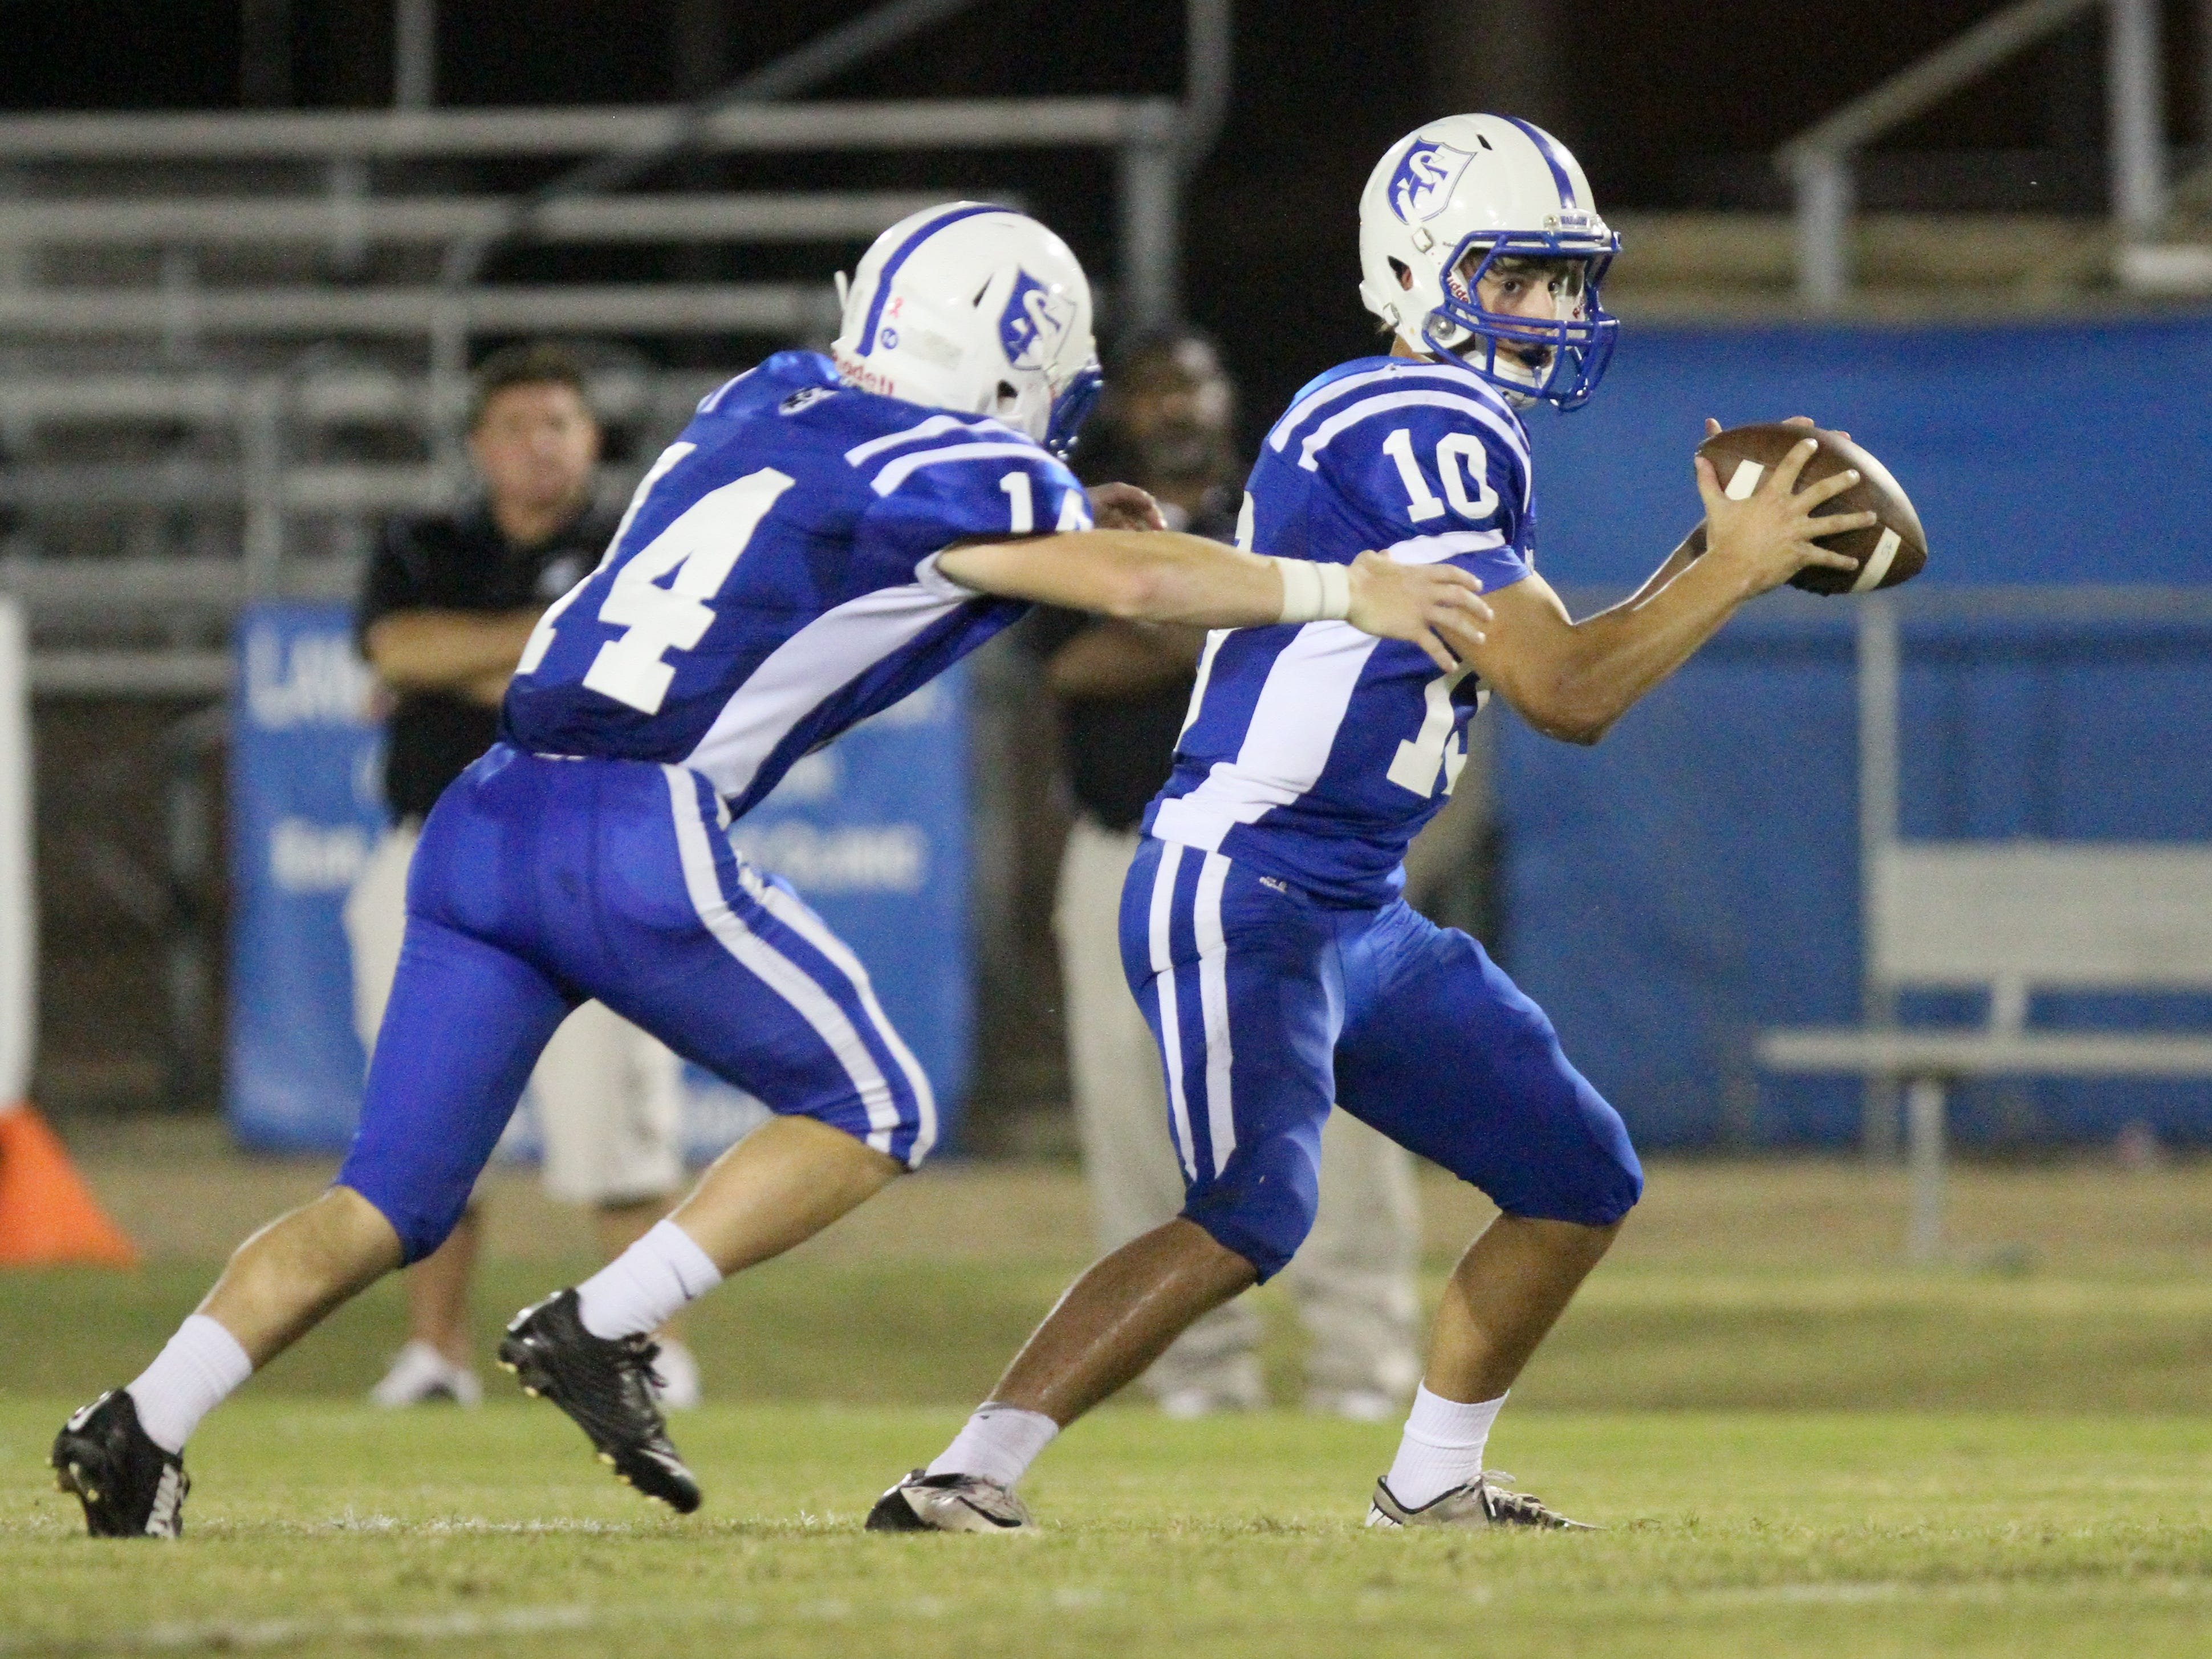 EMERALD MCINTYRE/THE NEWS-STAR St. Frederick quarterback Barrett Coon hands the ball to running back Jack Henry Turner against Tensas. The St. Frederick Warriors win their homecoming game against the Tensas Panthers, 47-12, Friday, Oct. 10, 2014, at Chip Luffey Field in Monroe, La.